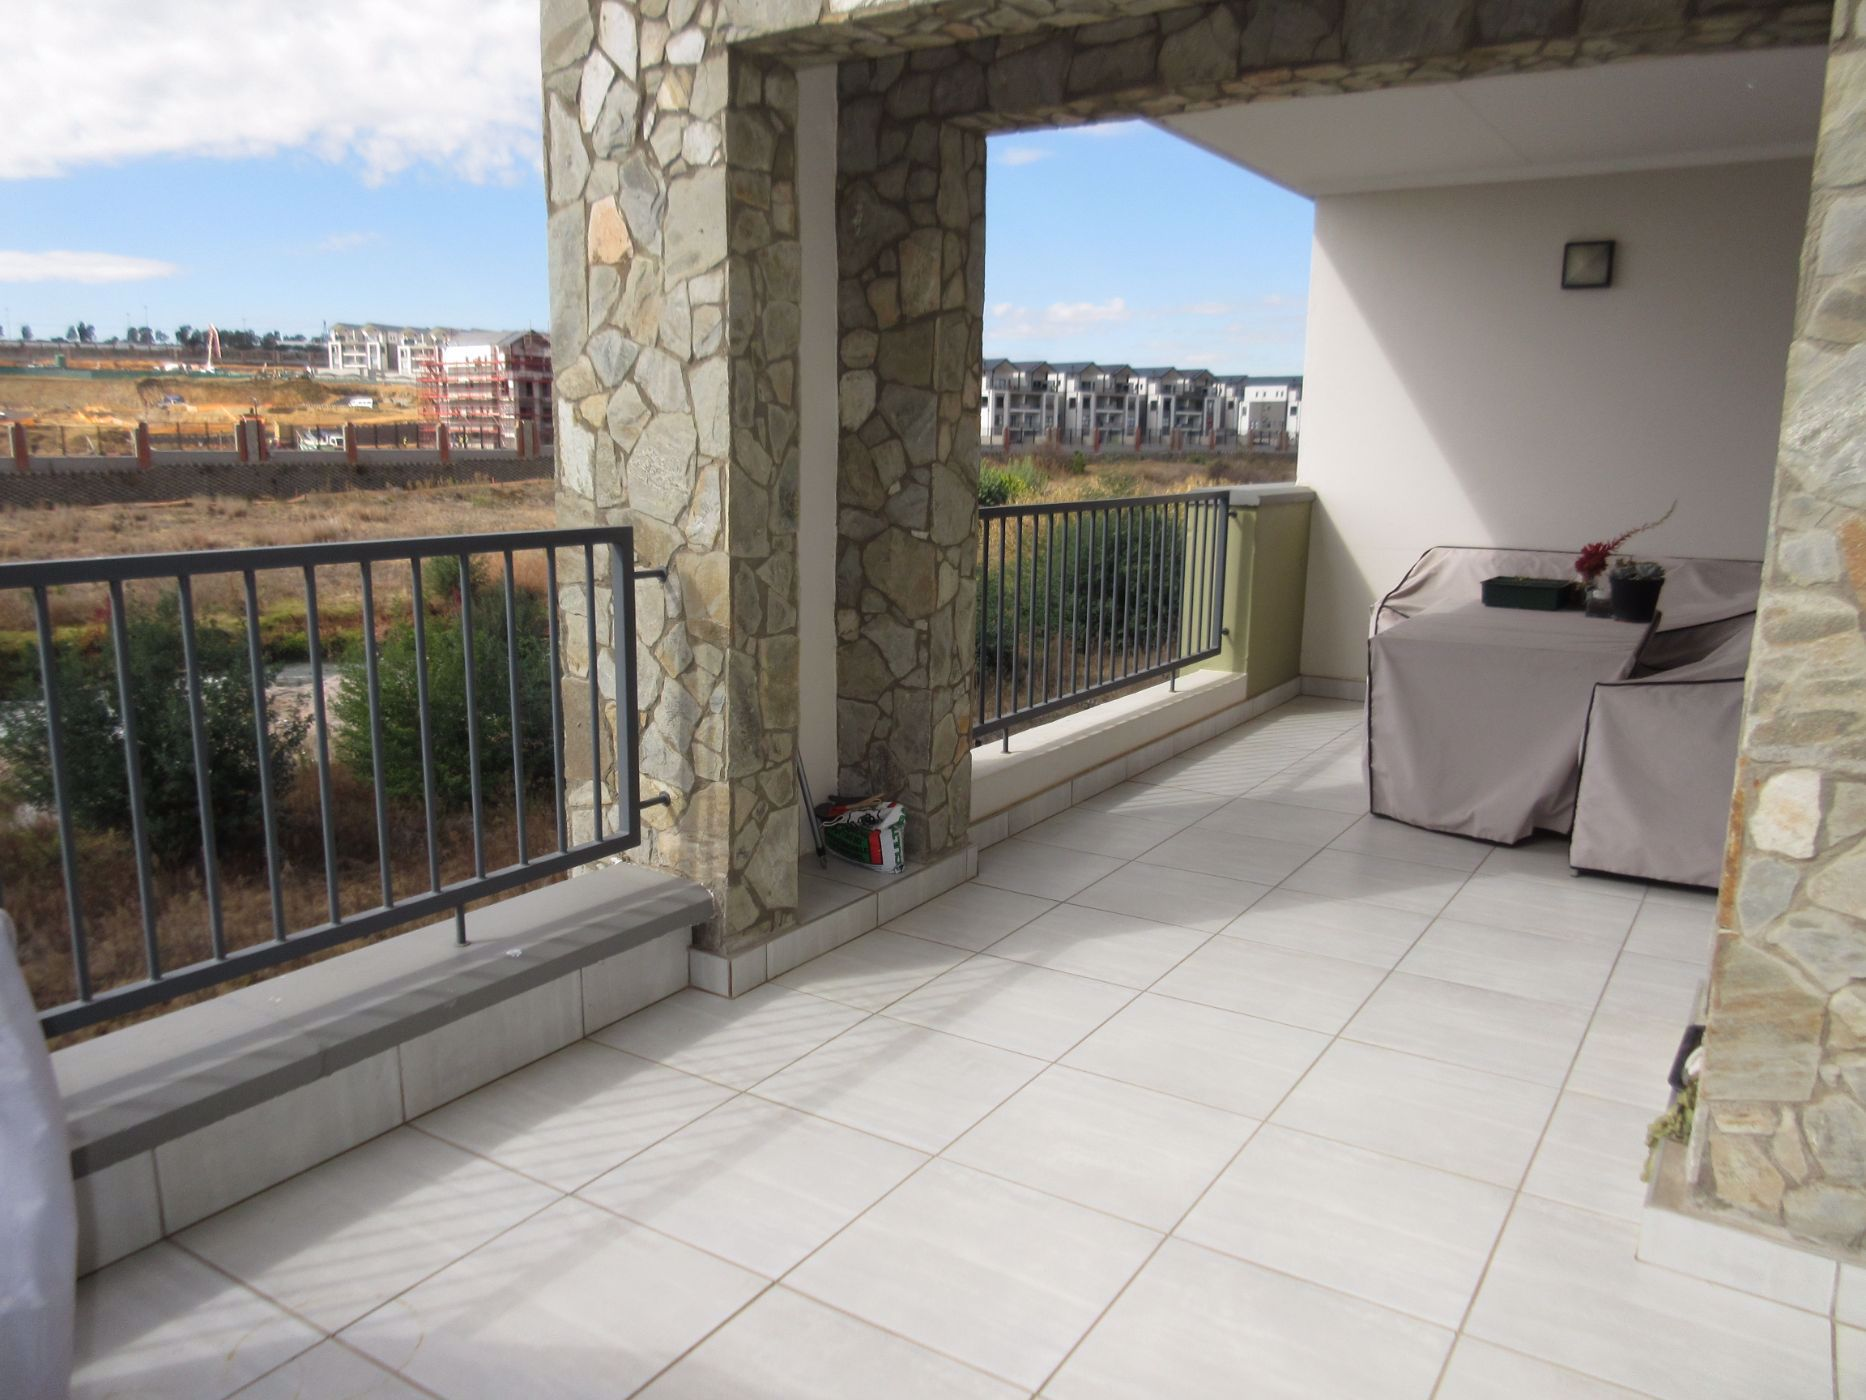 2 bedroom apartment for sale in Waterfall (Midrand)